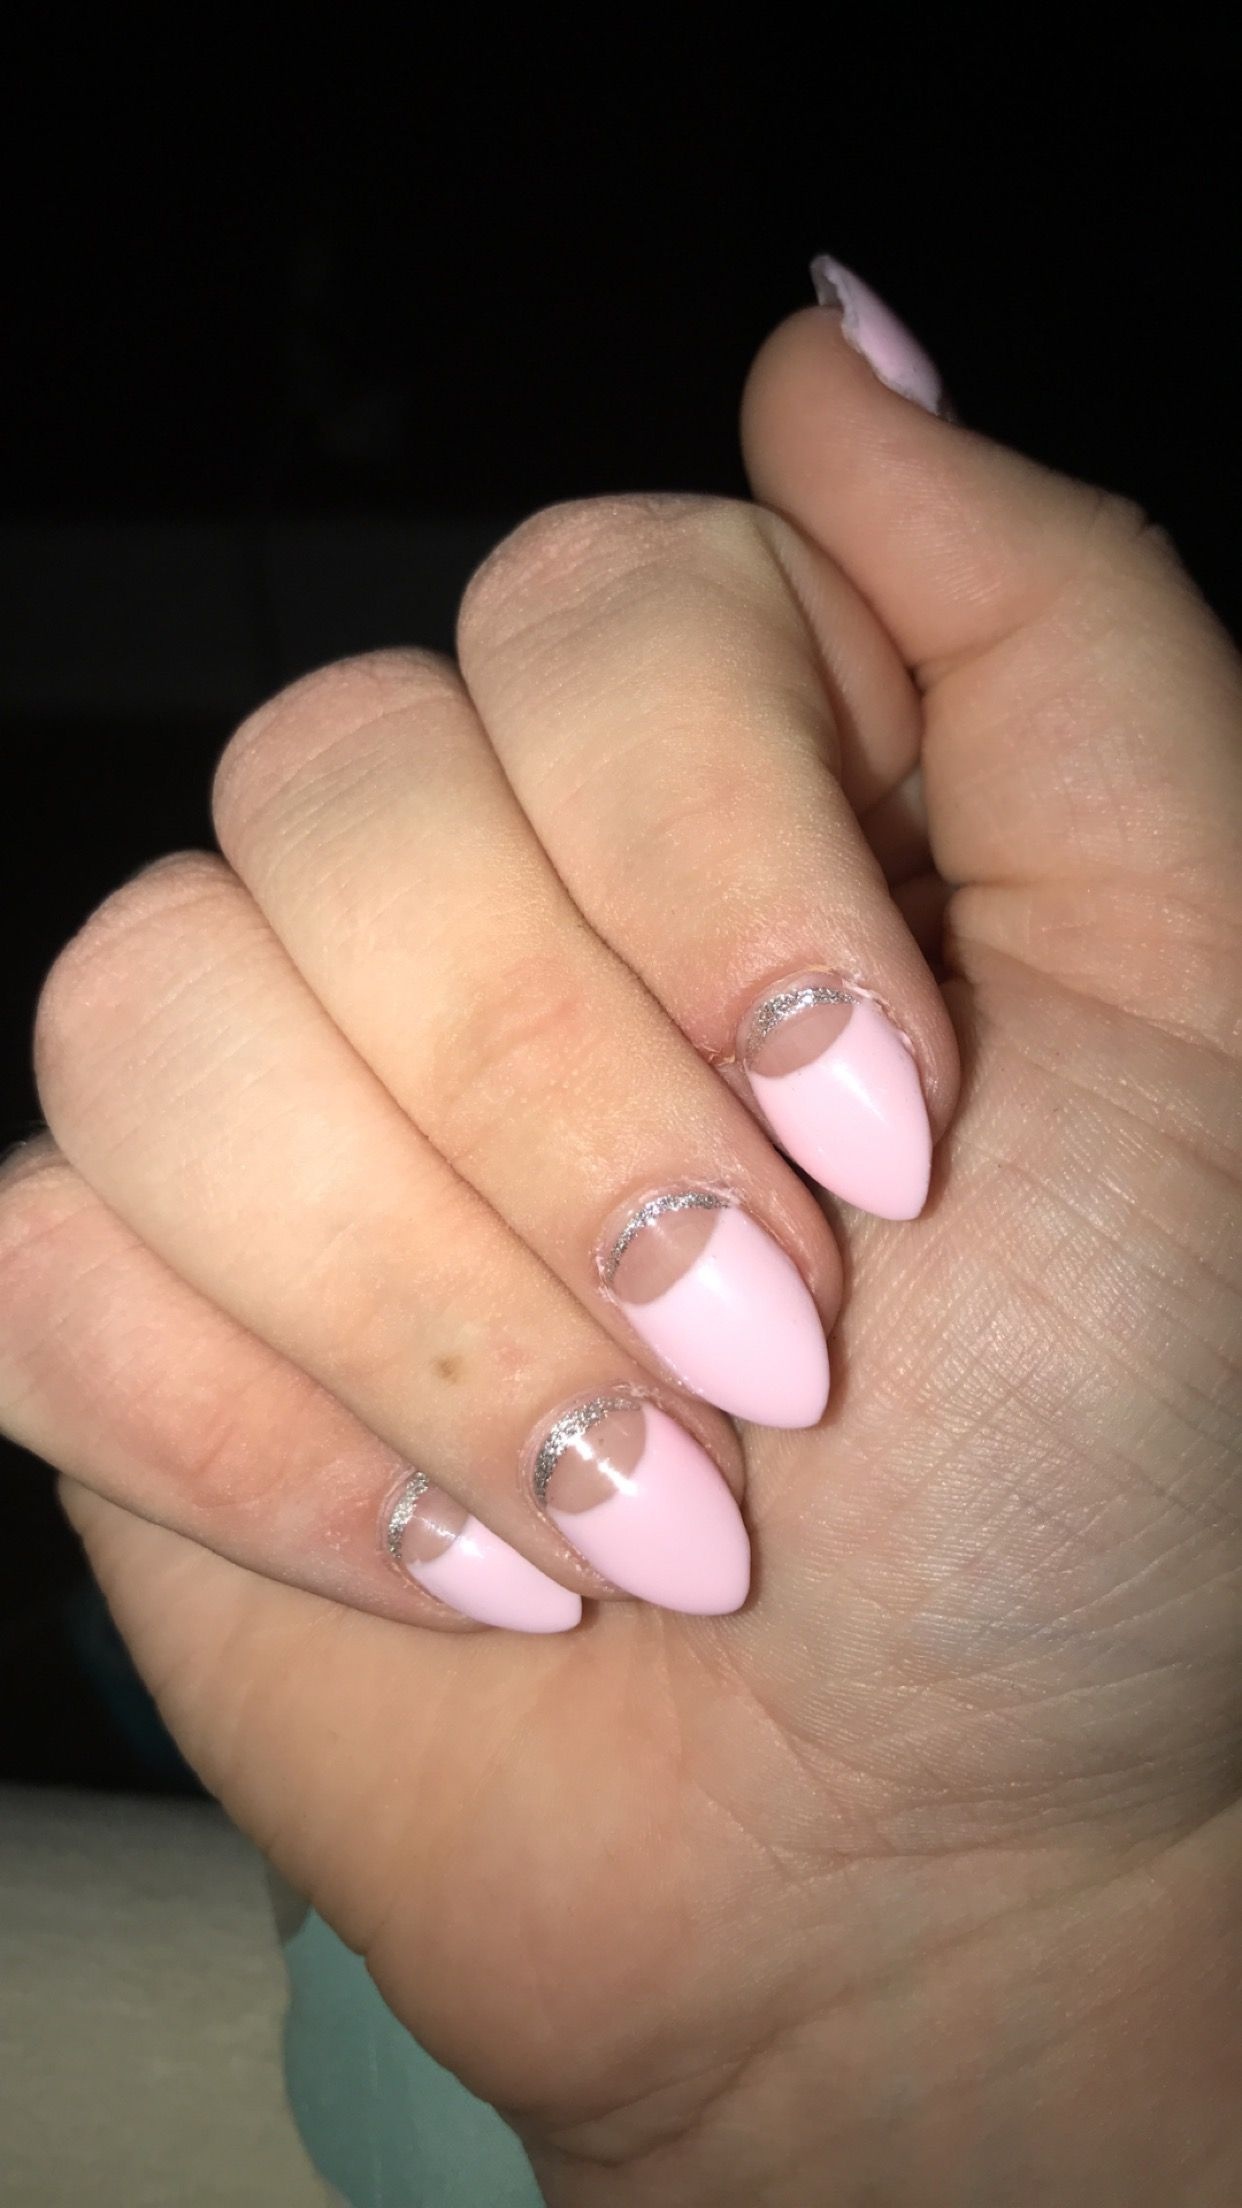 Half Moon Shape With Sparkly Strip At The Cuticle My Nails Cuticle Nails